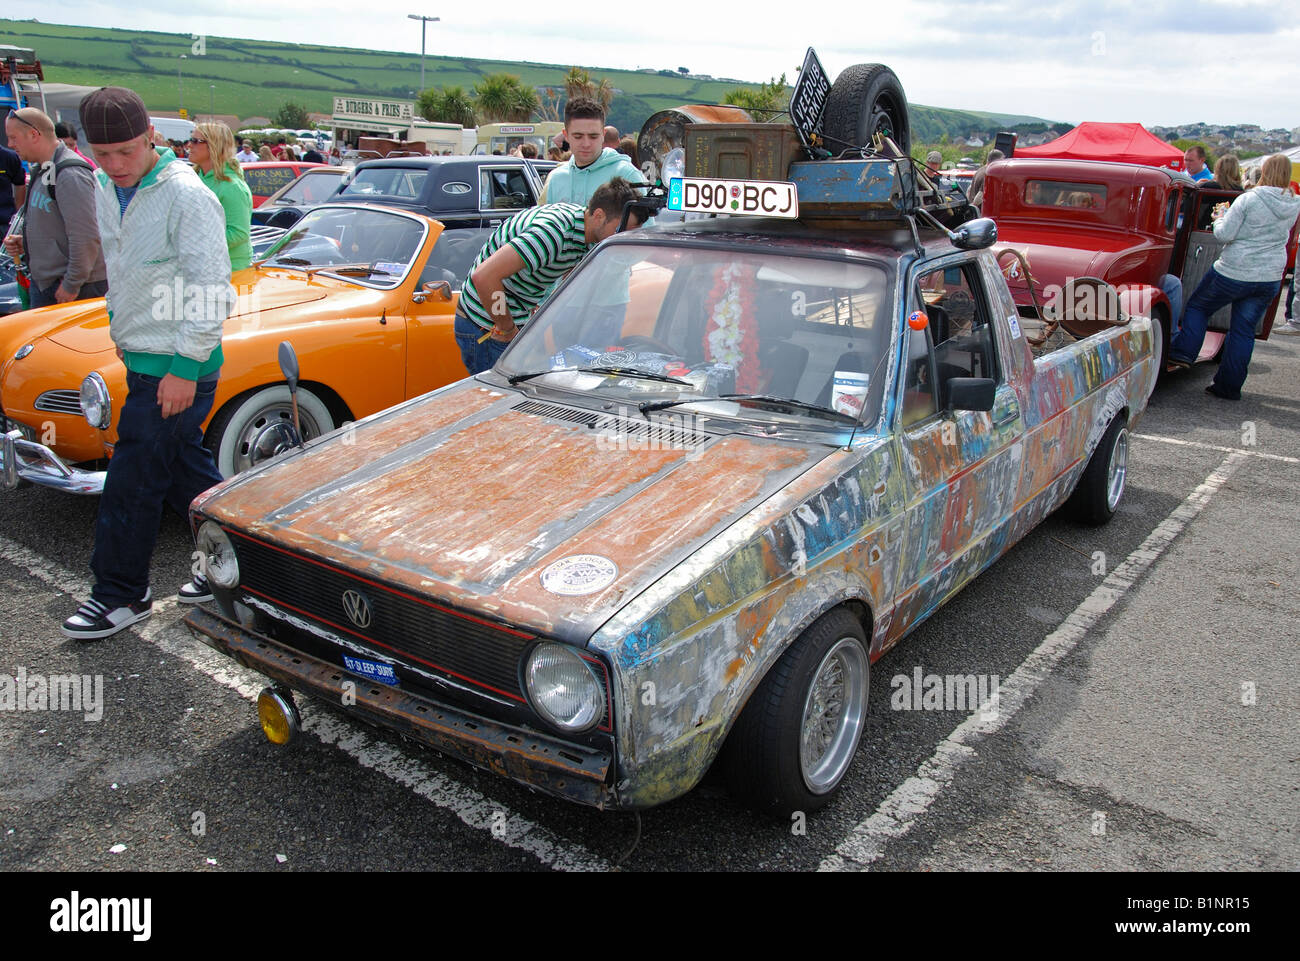 a 'grunged' volkswagen golf at the 'run to the sun' event at newquay in cornwall,england - Stock Image